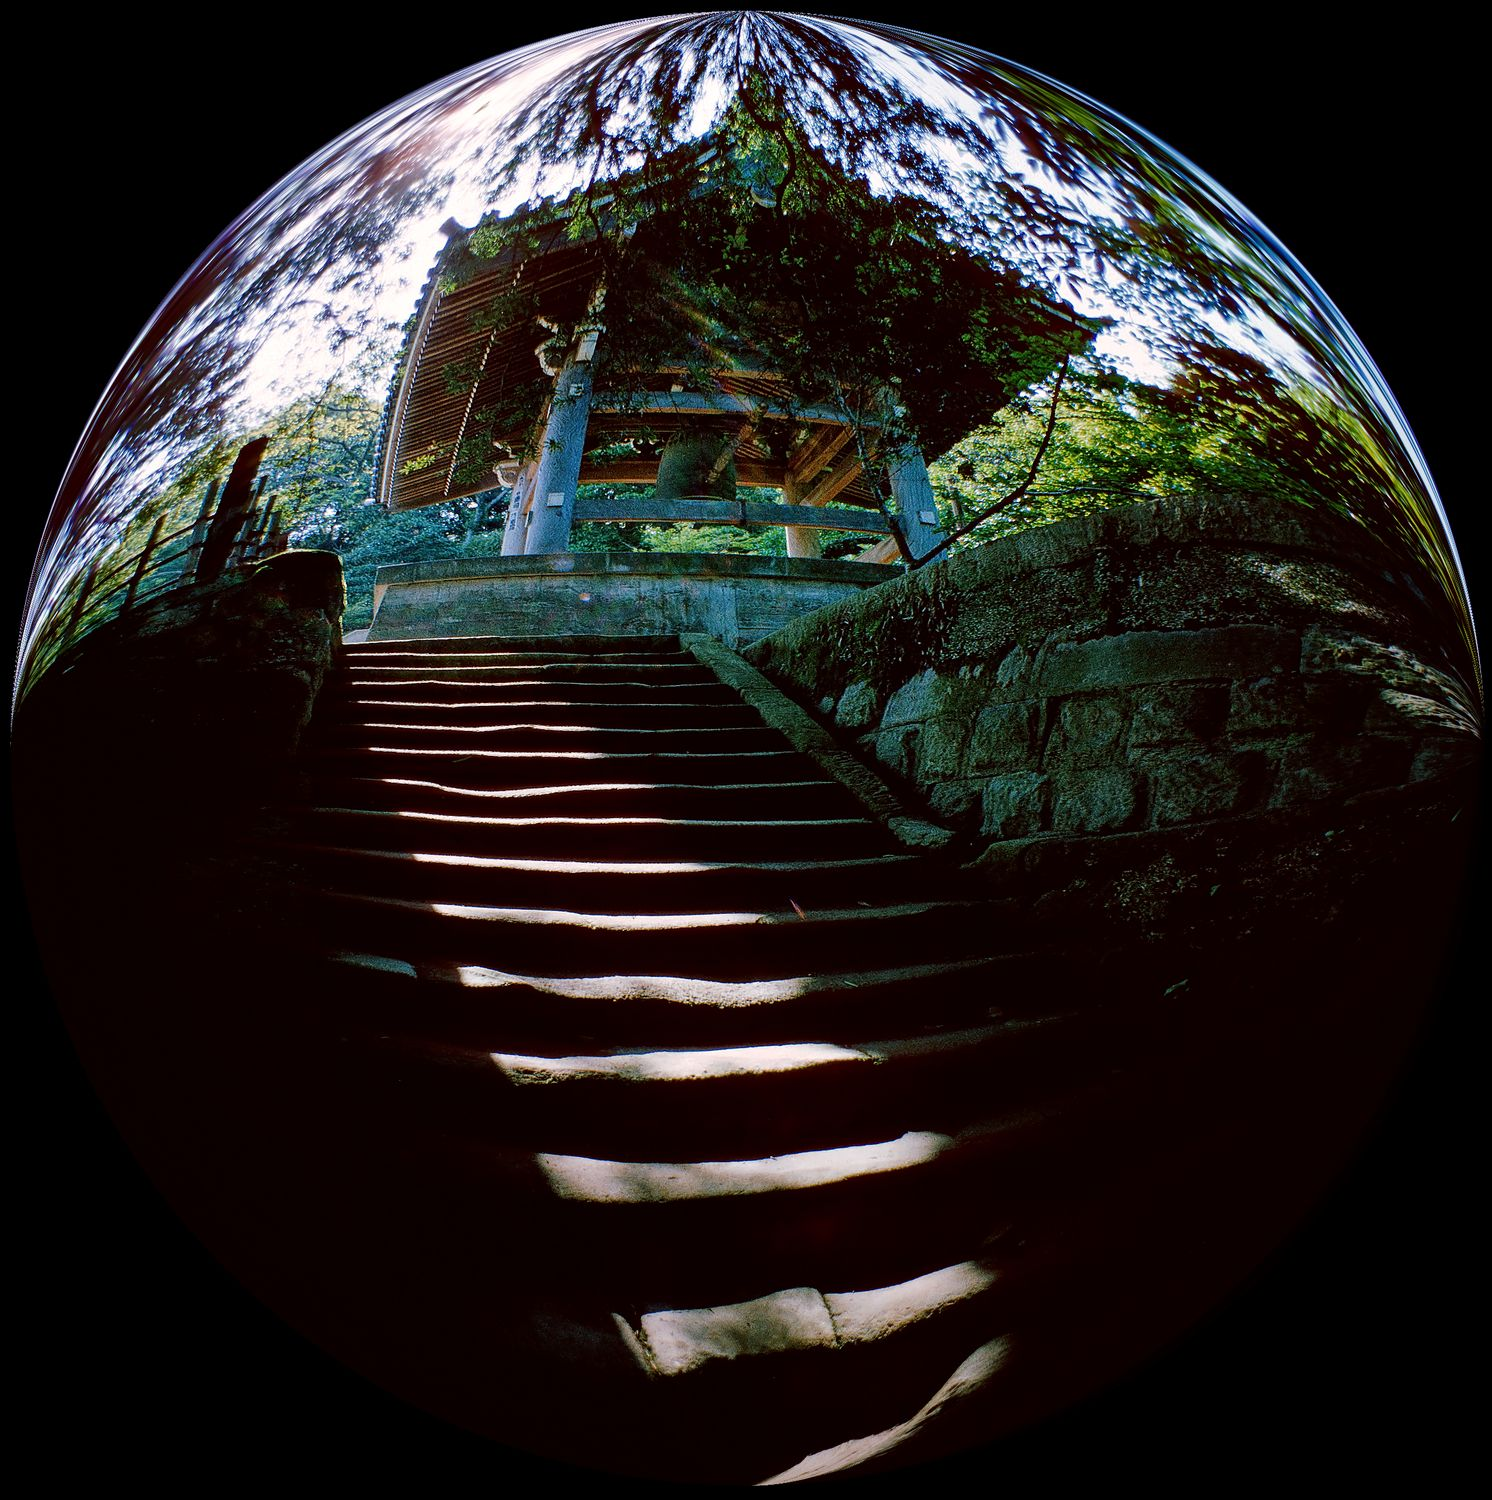 - In Kamakura, the steps lead out of the bubble -  Tony Karp's Bubble Pictures - From 1959 to 2013 - Tony Karp, design, art, photography, techno-impressionist, techno-impressionism, aerial photography , drone , drones , dji , mavic pro , video , 3D printing - Books -